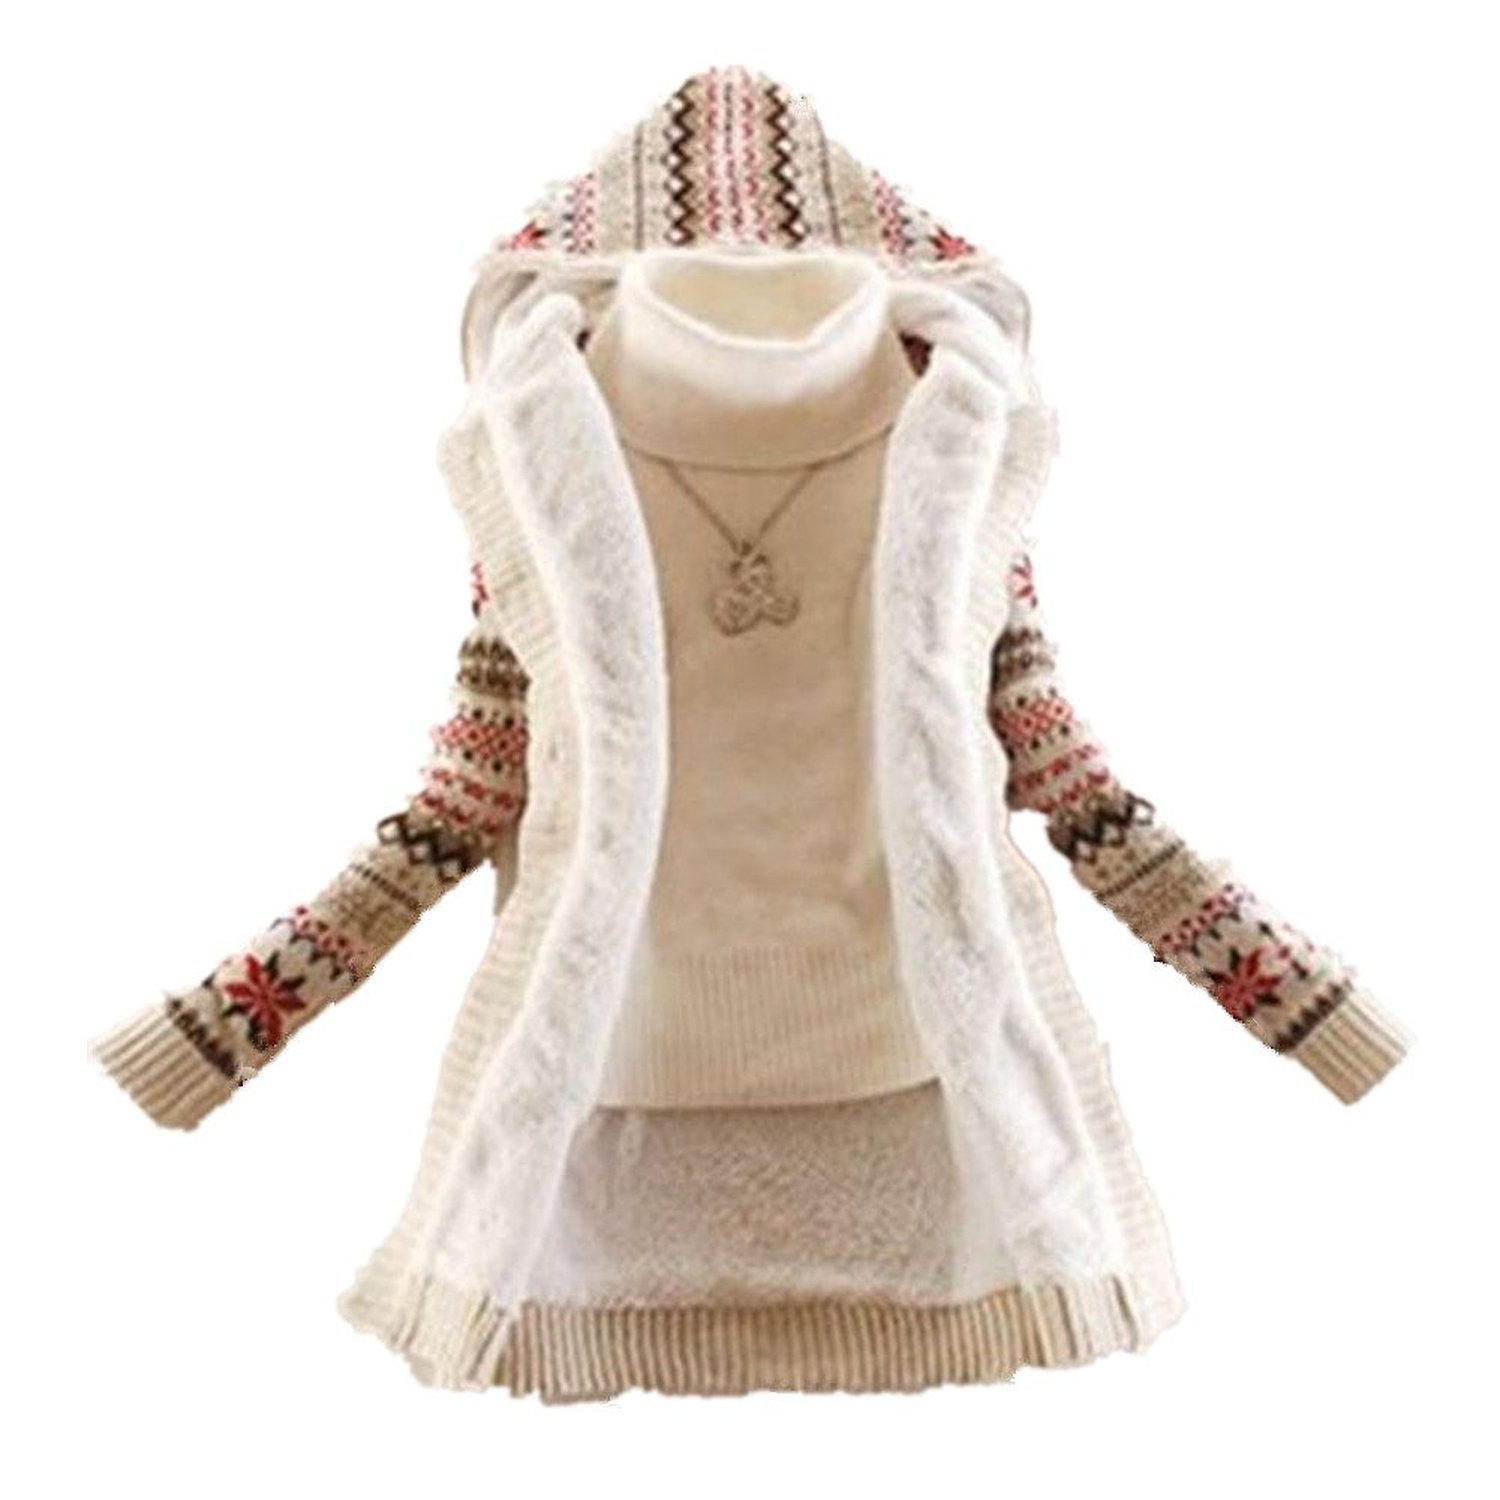 Women's Knited Thicken Warm Winter Hooded Cardigan Coats Sweater ...